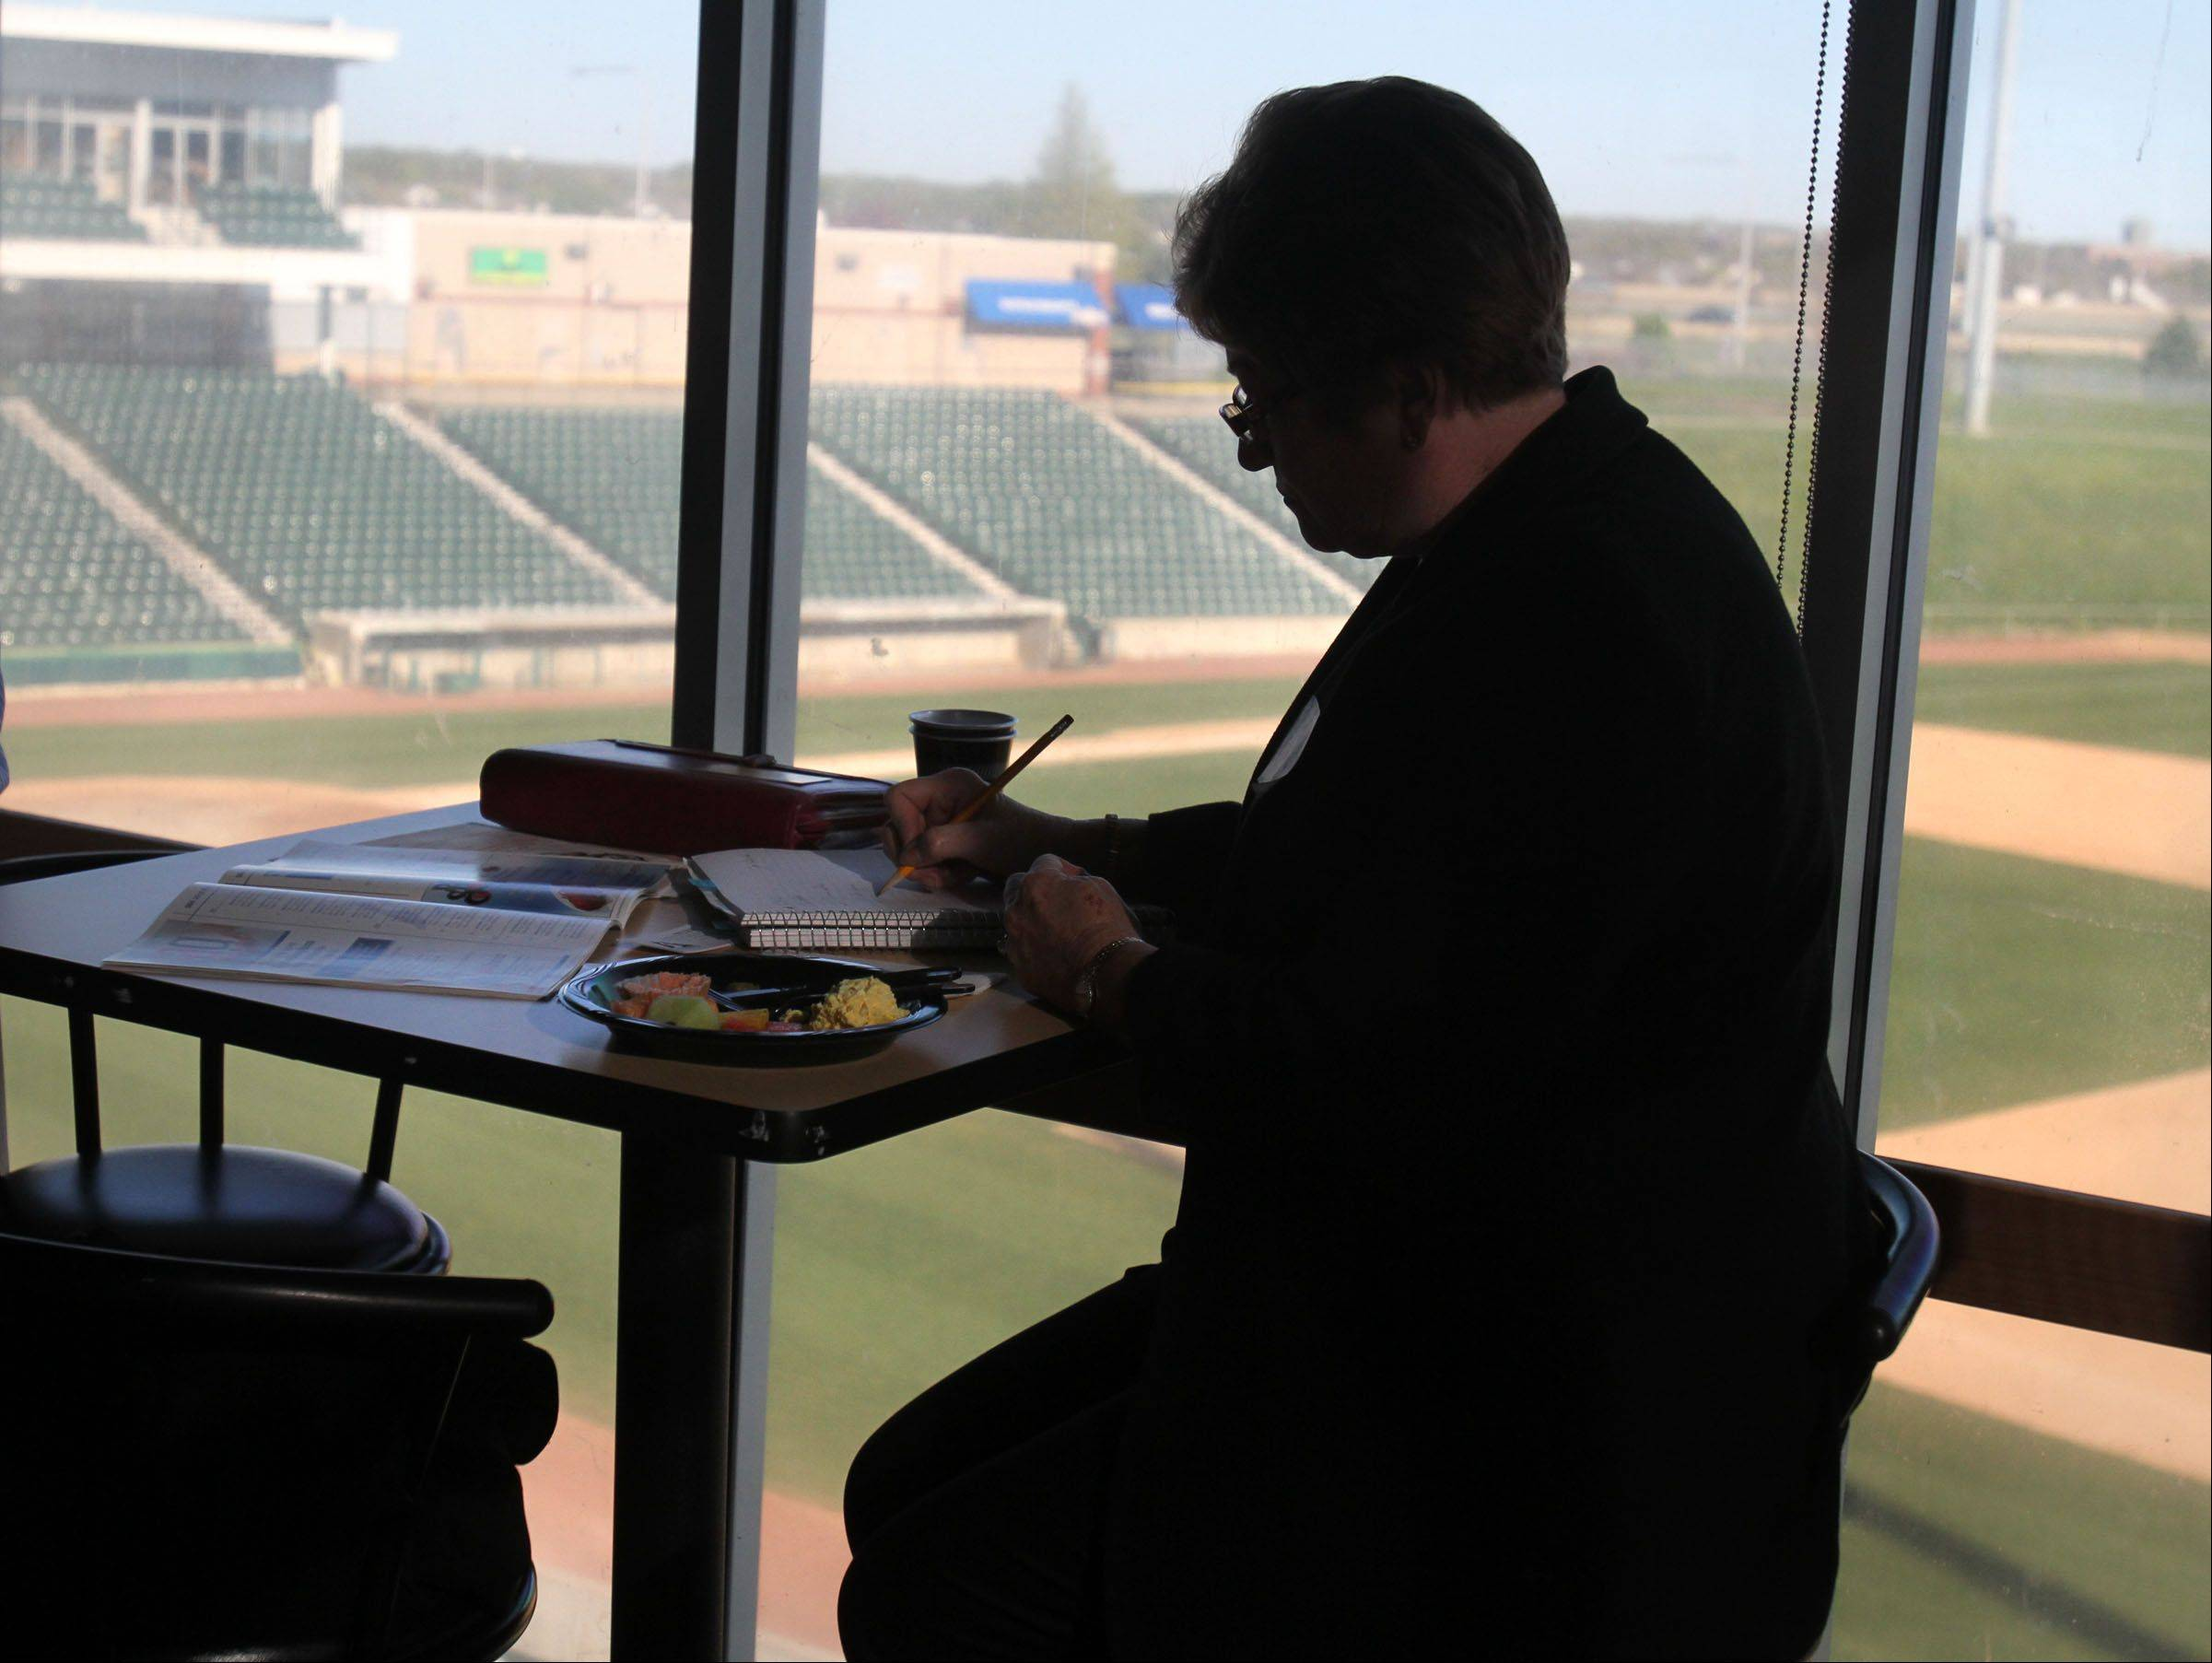 Members of the Schaumburg Business Association Tuesday had breakfast overlooking the field at Schaumburg Boomers Stadium, where team owner Pat Salvi spoke of the club's place in the local business community.